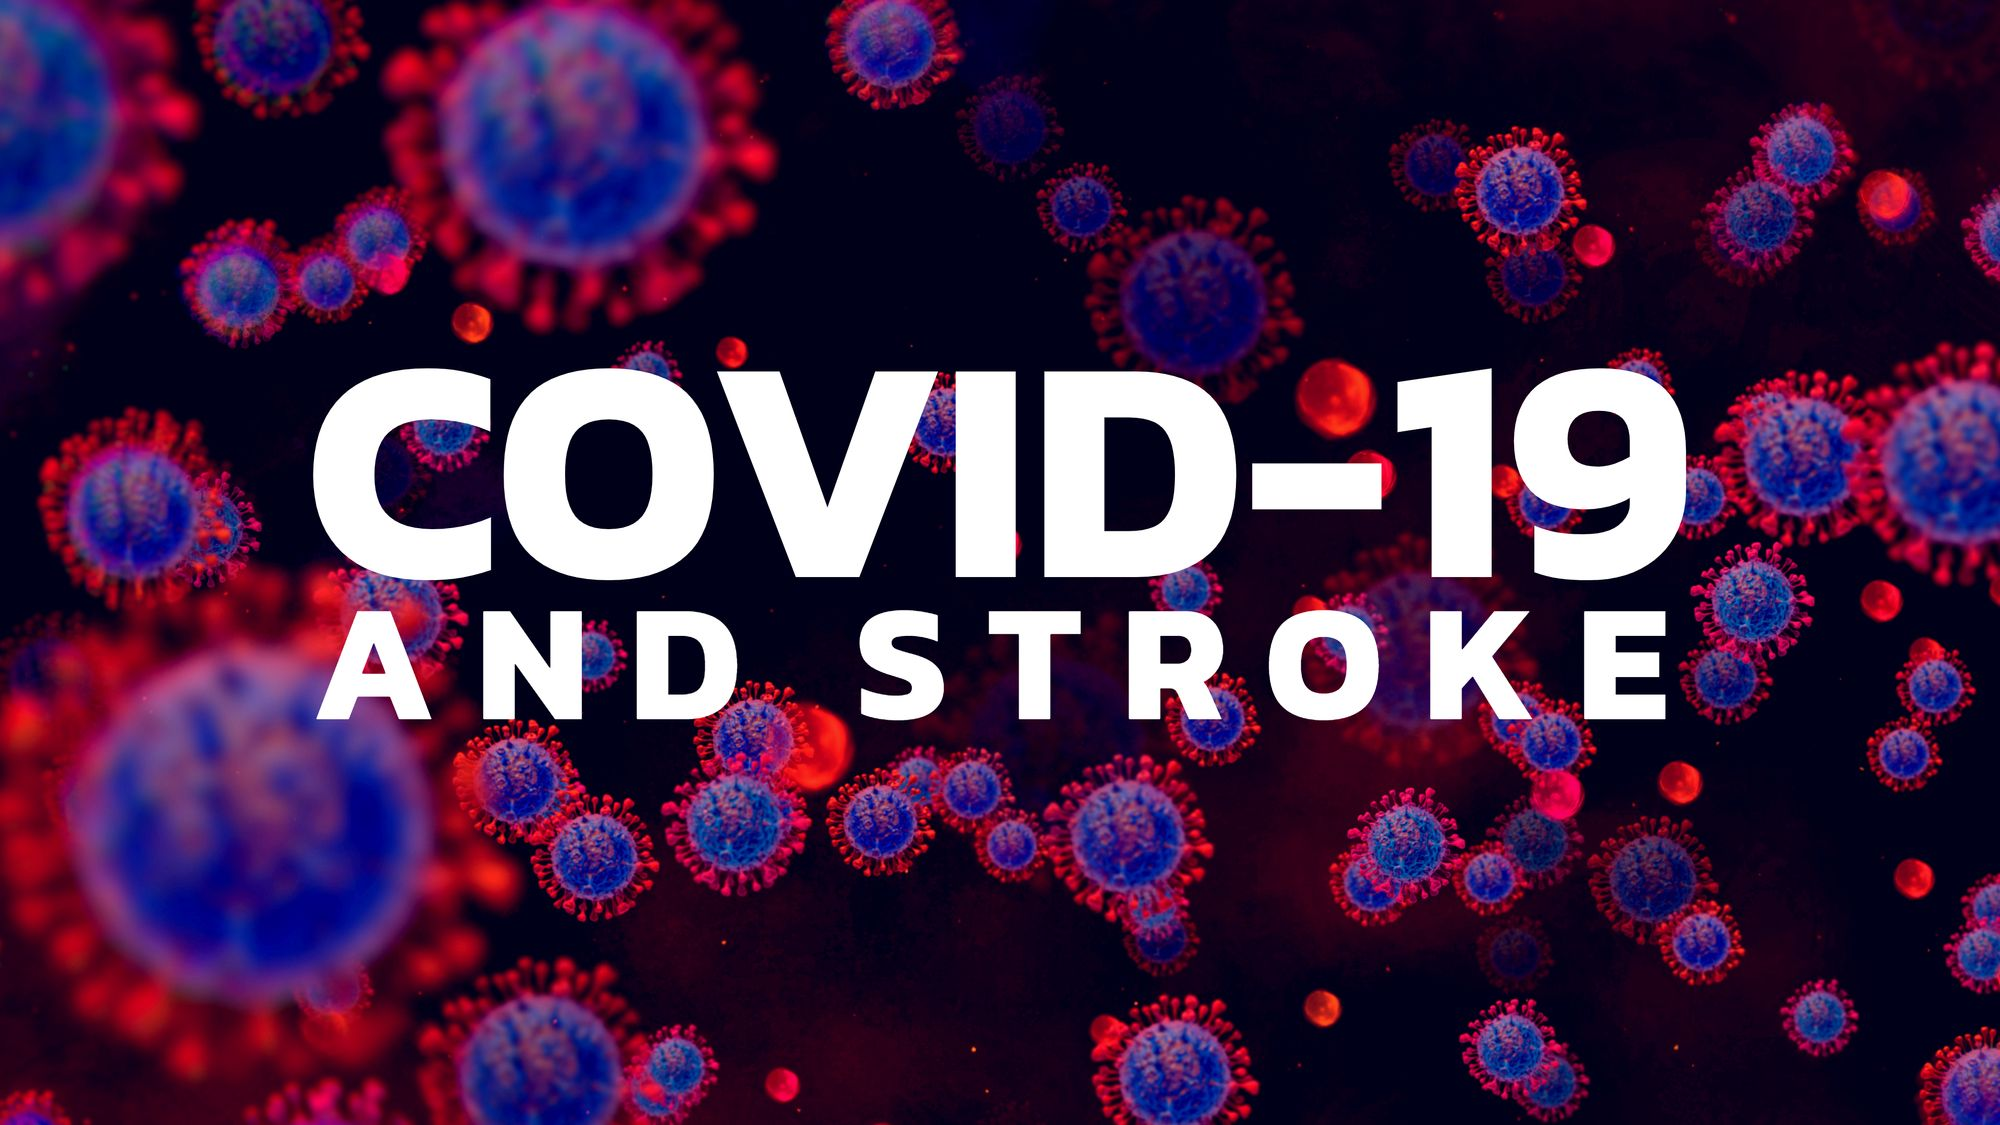 COVID-19 and Stroke in Younger Adults: Know the Signs to Save a Life